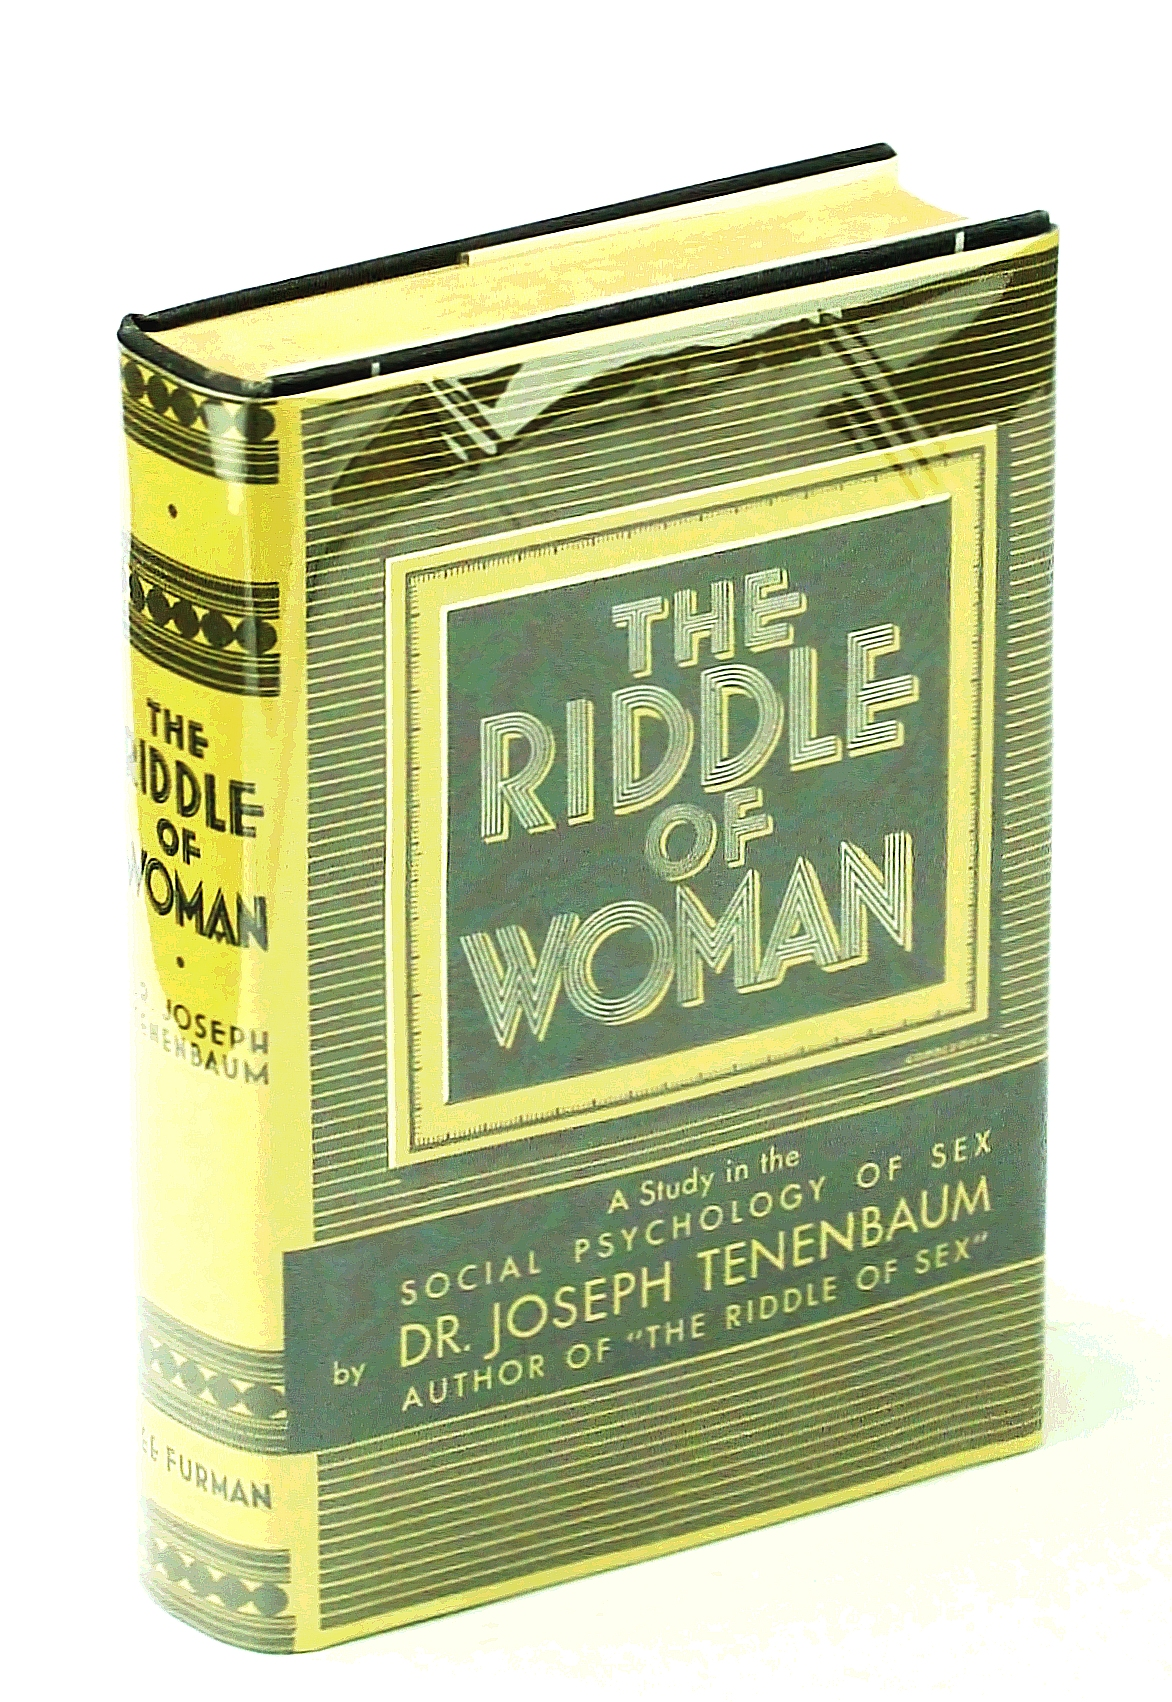 Image for The Riddle of Woman. a Study in the Social Psychology of Sex